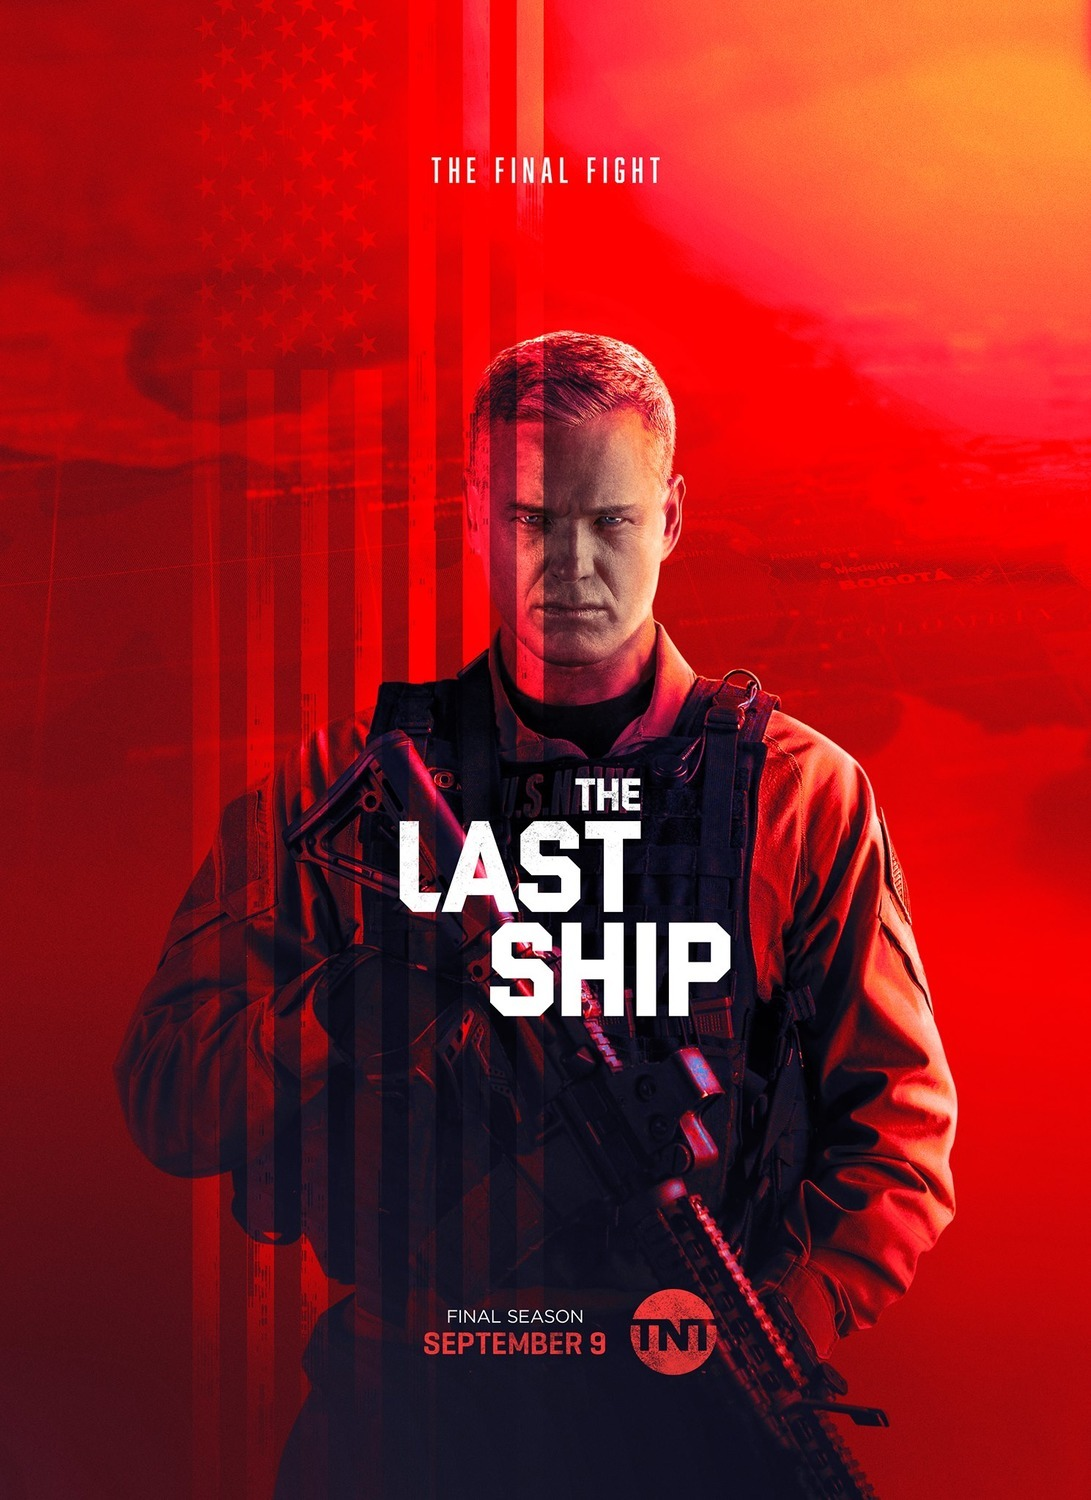 The Last Ship (TV Series 2014–2018) - IMDb